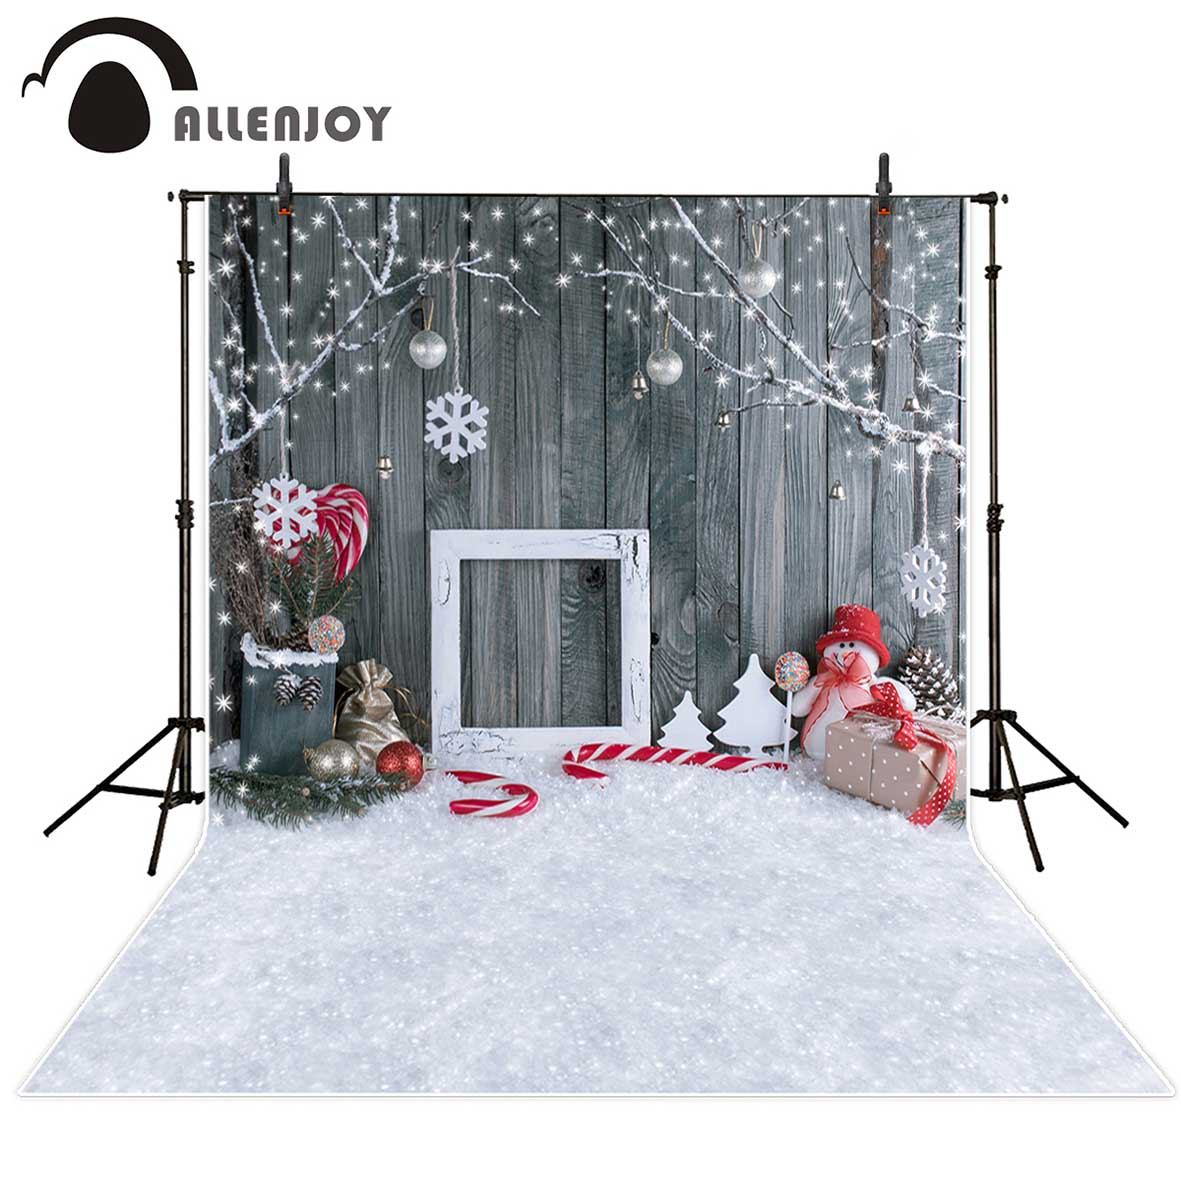 Allenjoy photographic background Christmas snowman gray woodwall snowflake backdrop photocall new photobooth vinyl photography photographic studio background white clouds blue dinette chinese style new born professional xmas photocall background pictures